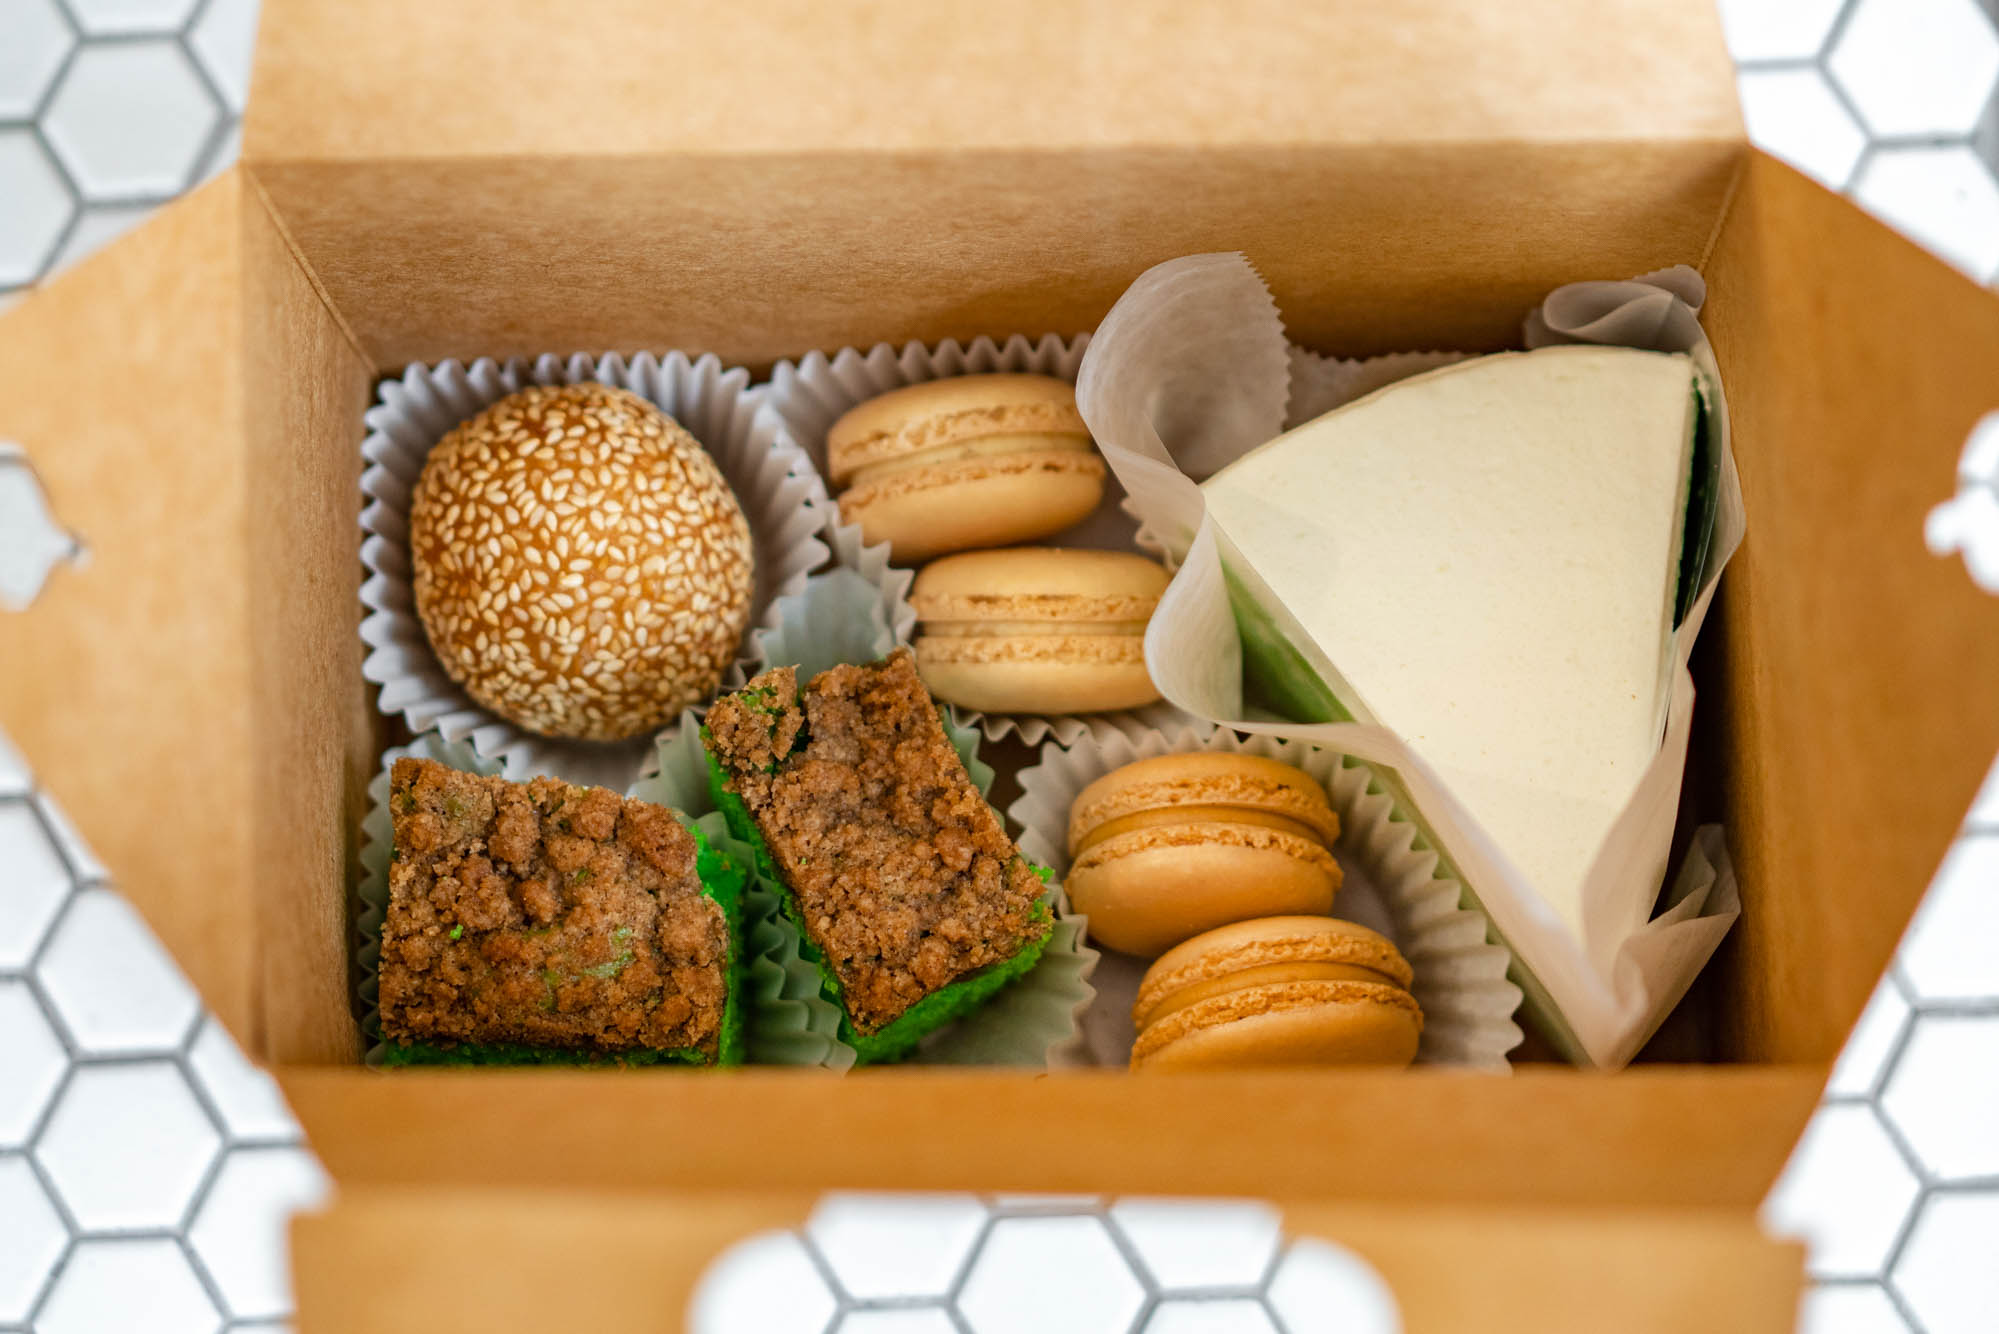 A close-up photo looking into a brown box that is filled with pastries, including a slice of white-frosted cake and four macarons